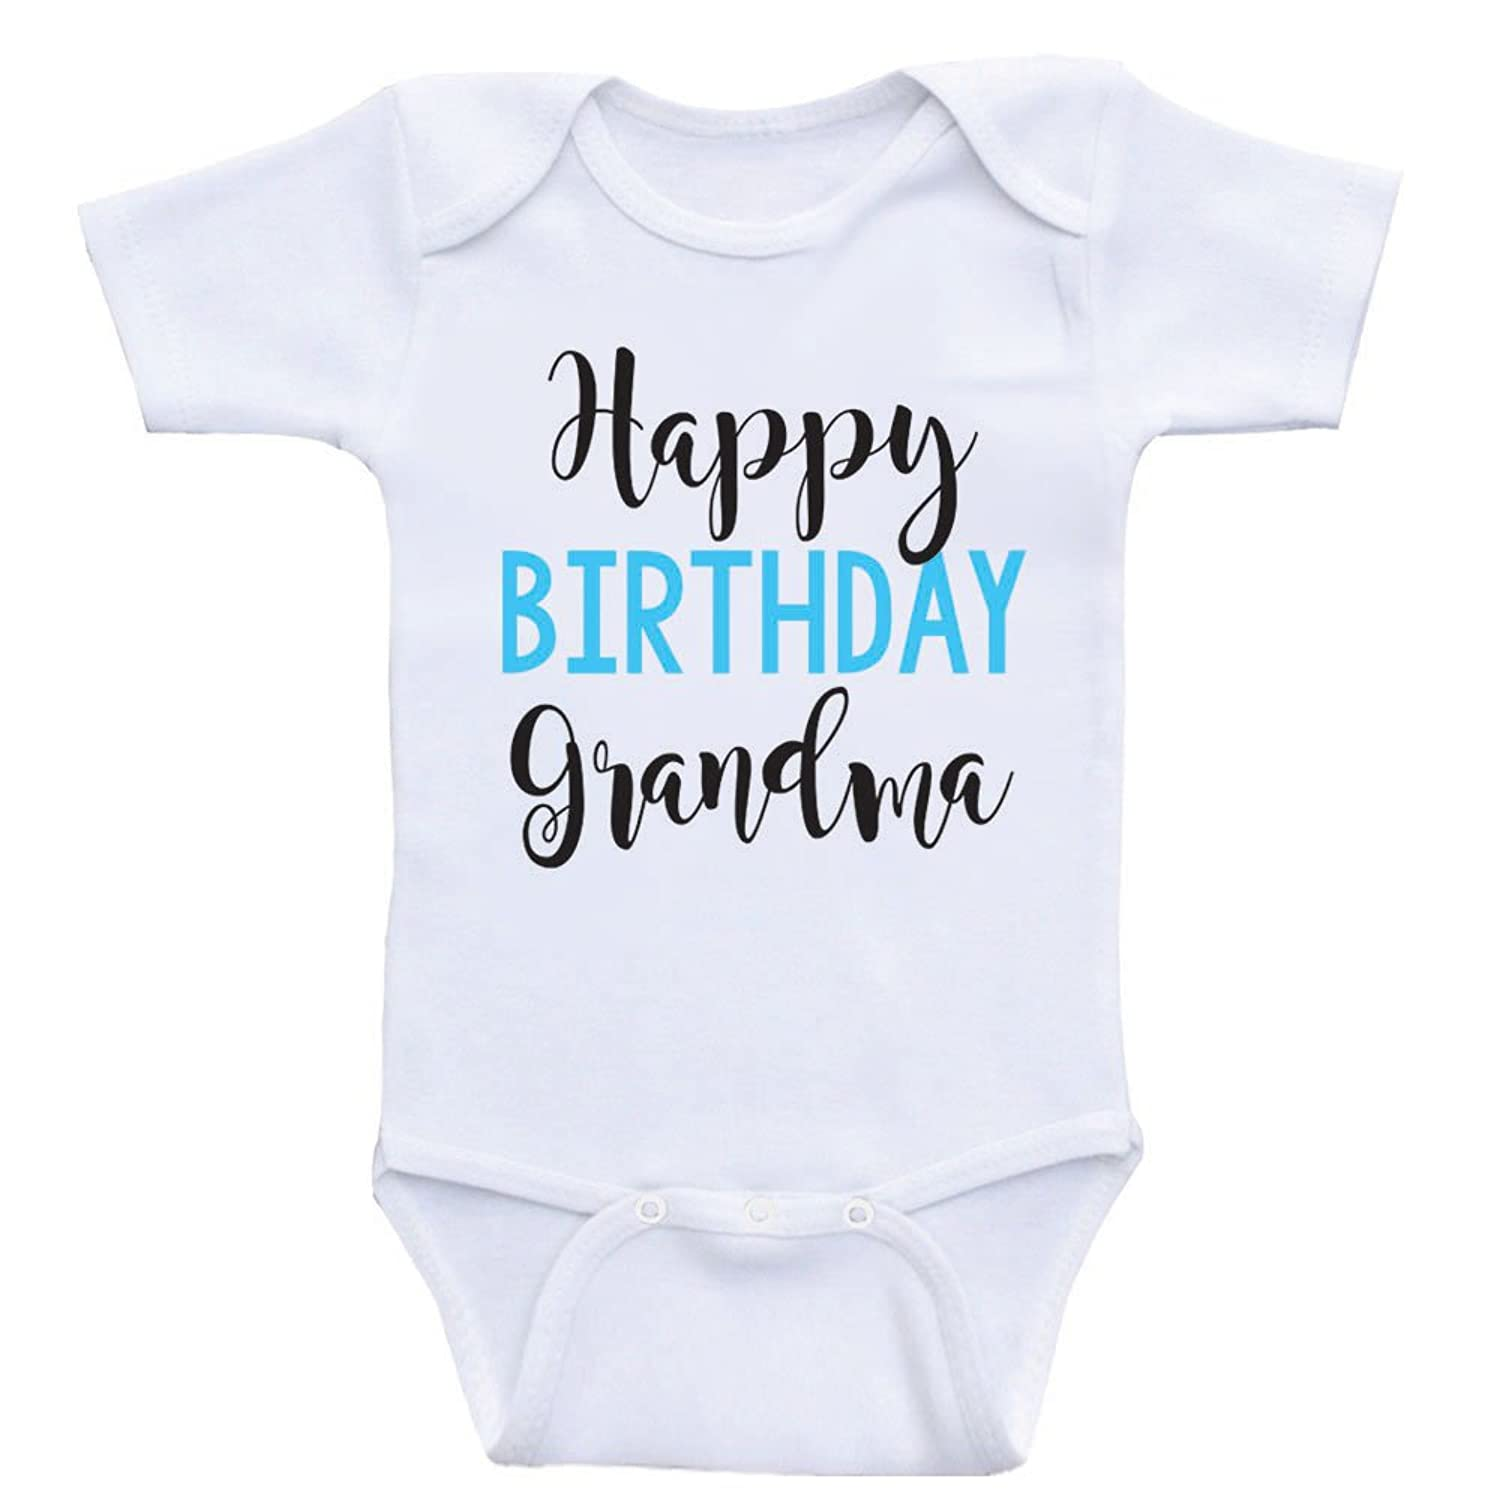 Amazon HAPPY BIRTHDAY GRANDMA BigBoyMusic Baby e Piece